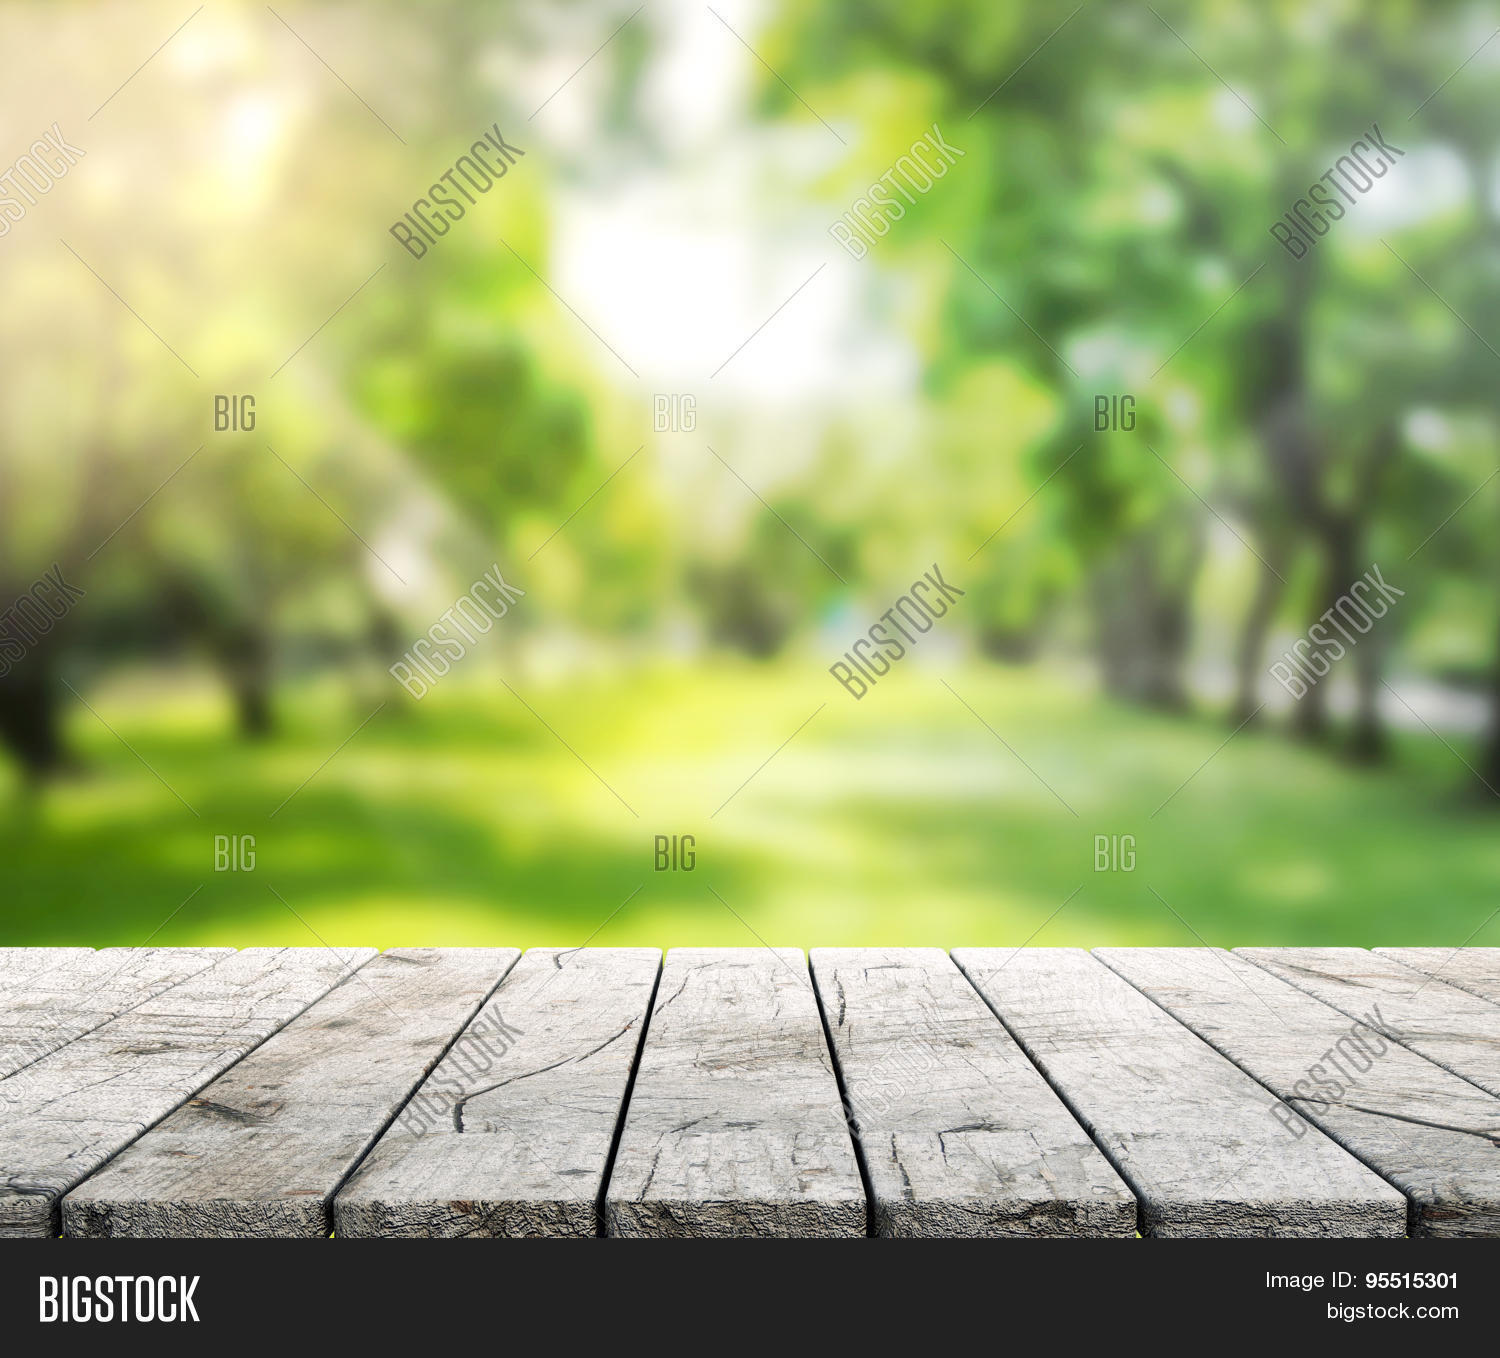 Table Top and Blur Nature the Background Image - cg9p5515301c